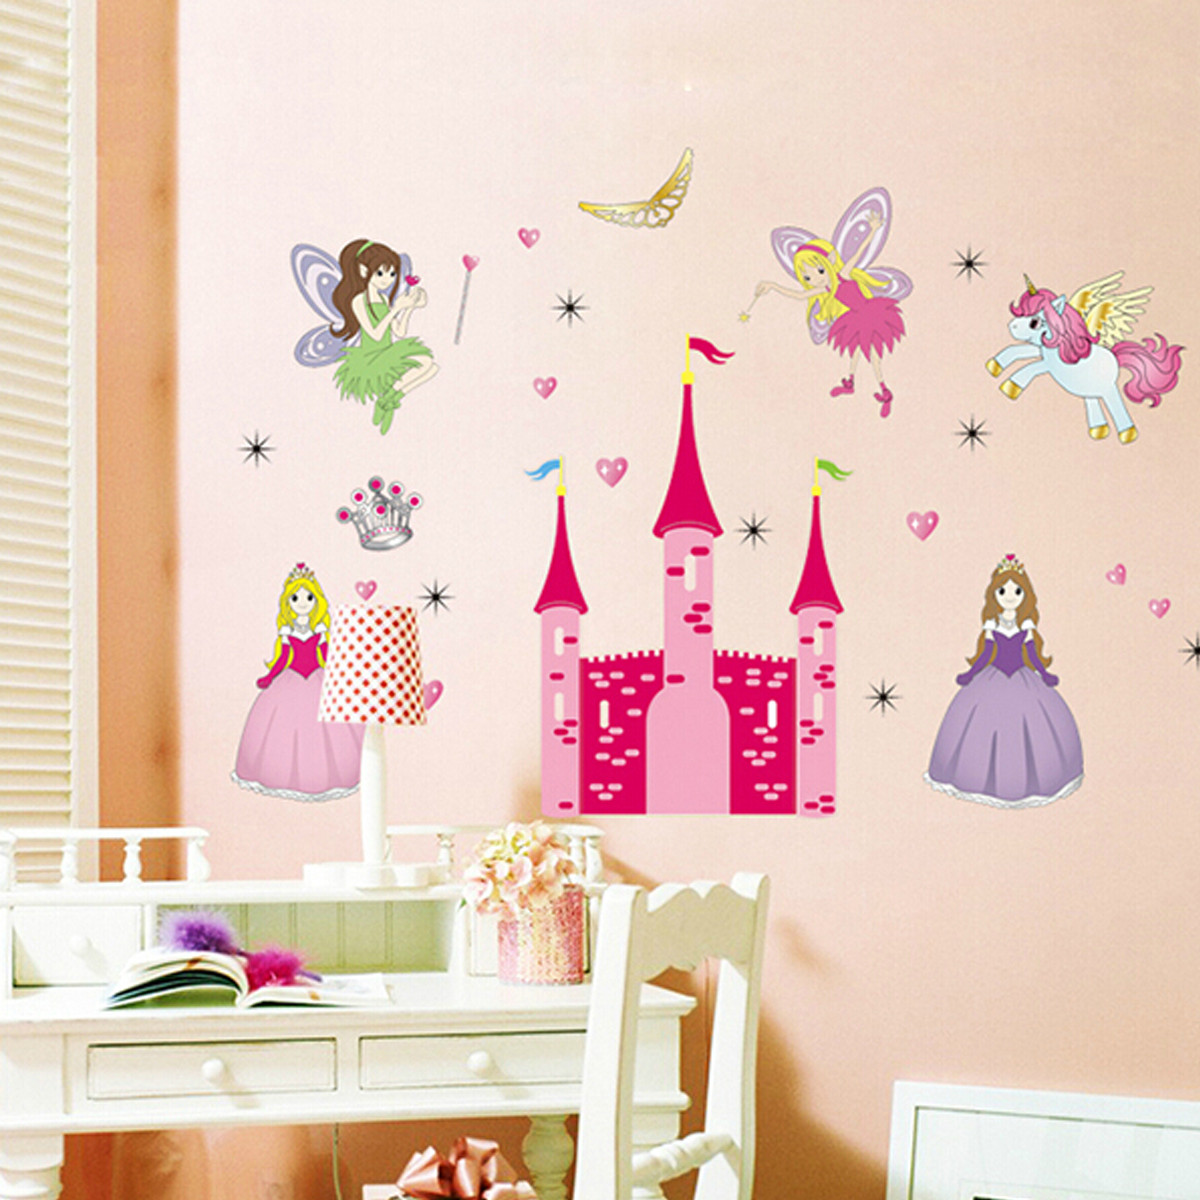 Removable vinyl mural wall sticker fairy princess castle for Cuartos decorados para bebes